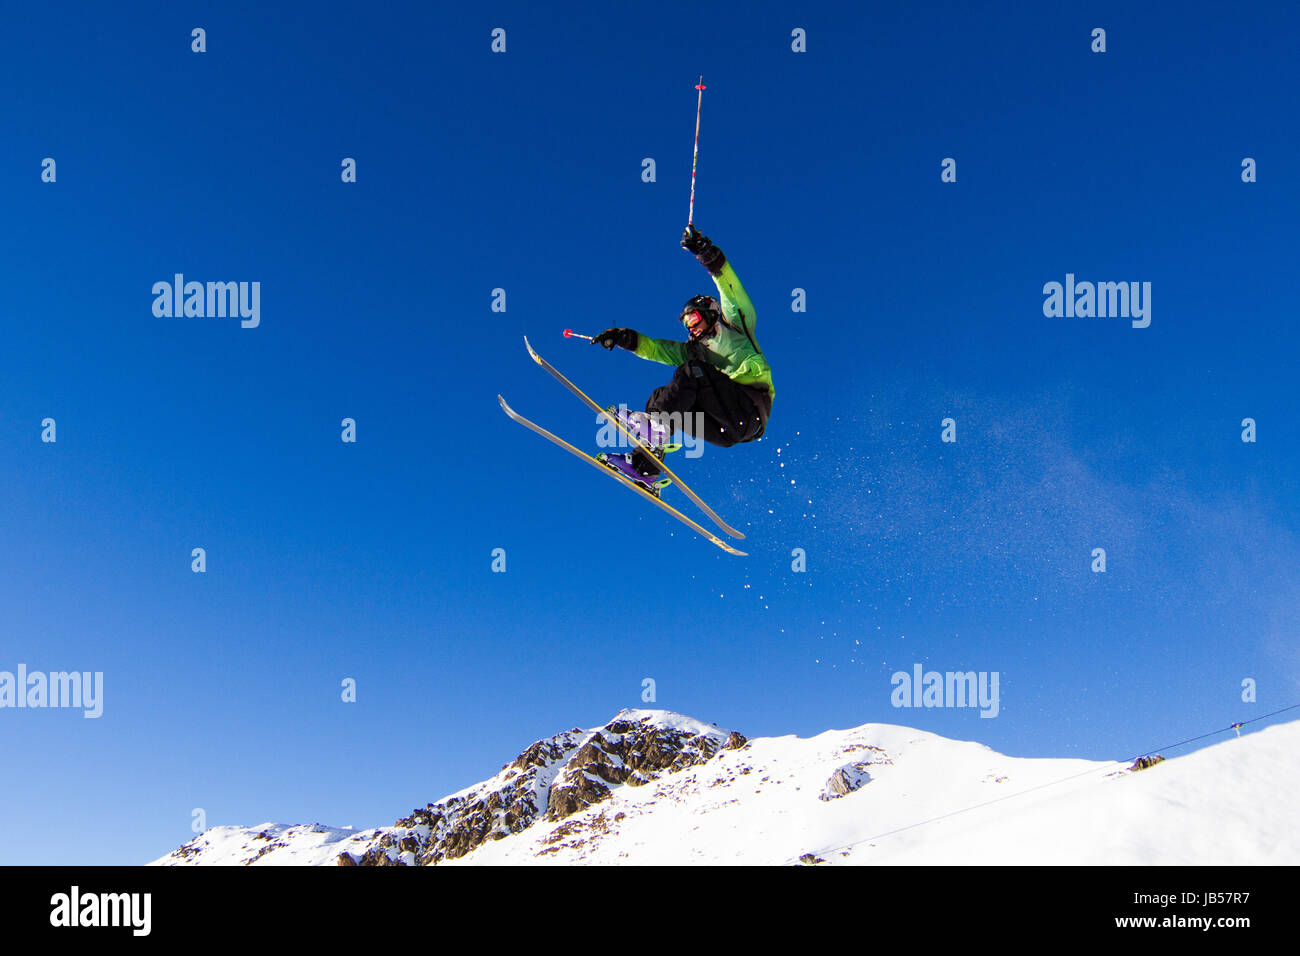 Skier pulling off a tricky jump in snowpark. Trademarks have been removed. - Stock Image